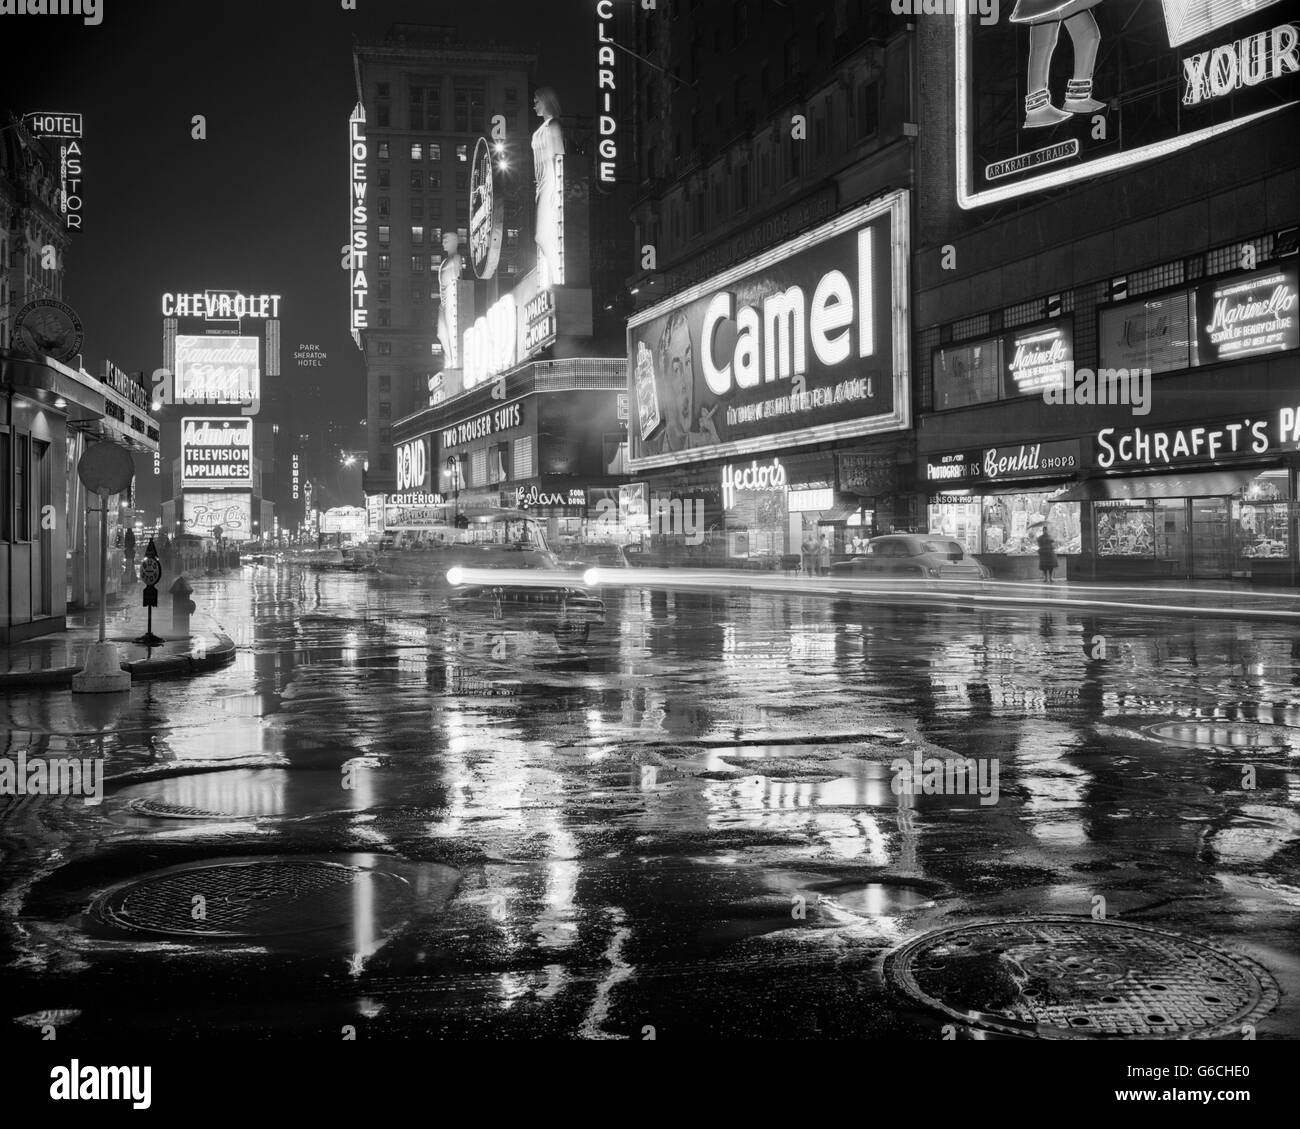 1950s WET RAINY STREETS OF TIMES SQUARE AT NIGHT NEON SIGNS ADVERTISING NEW YORK CITY NY